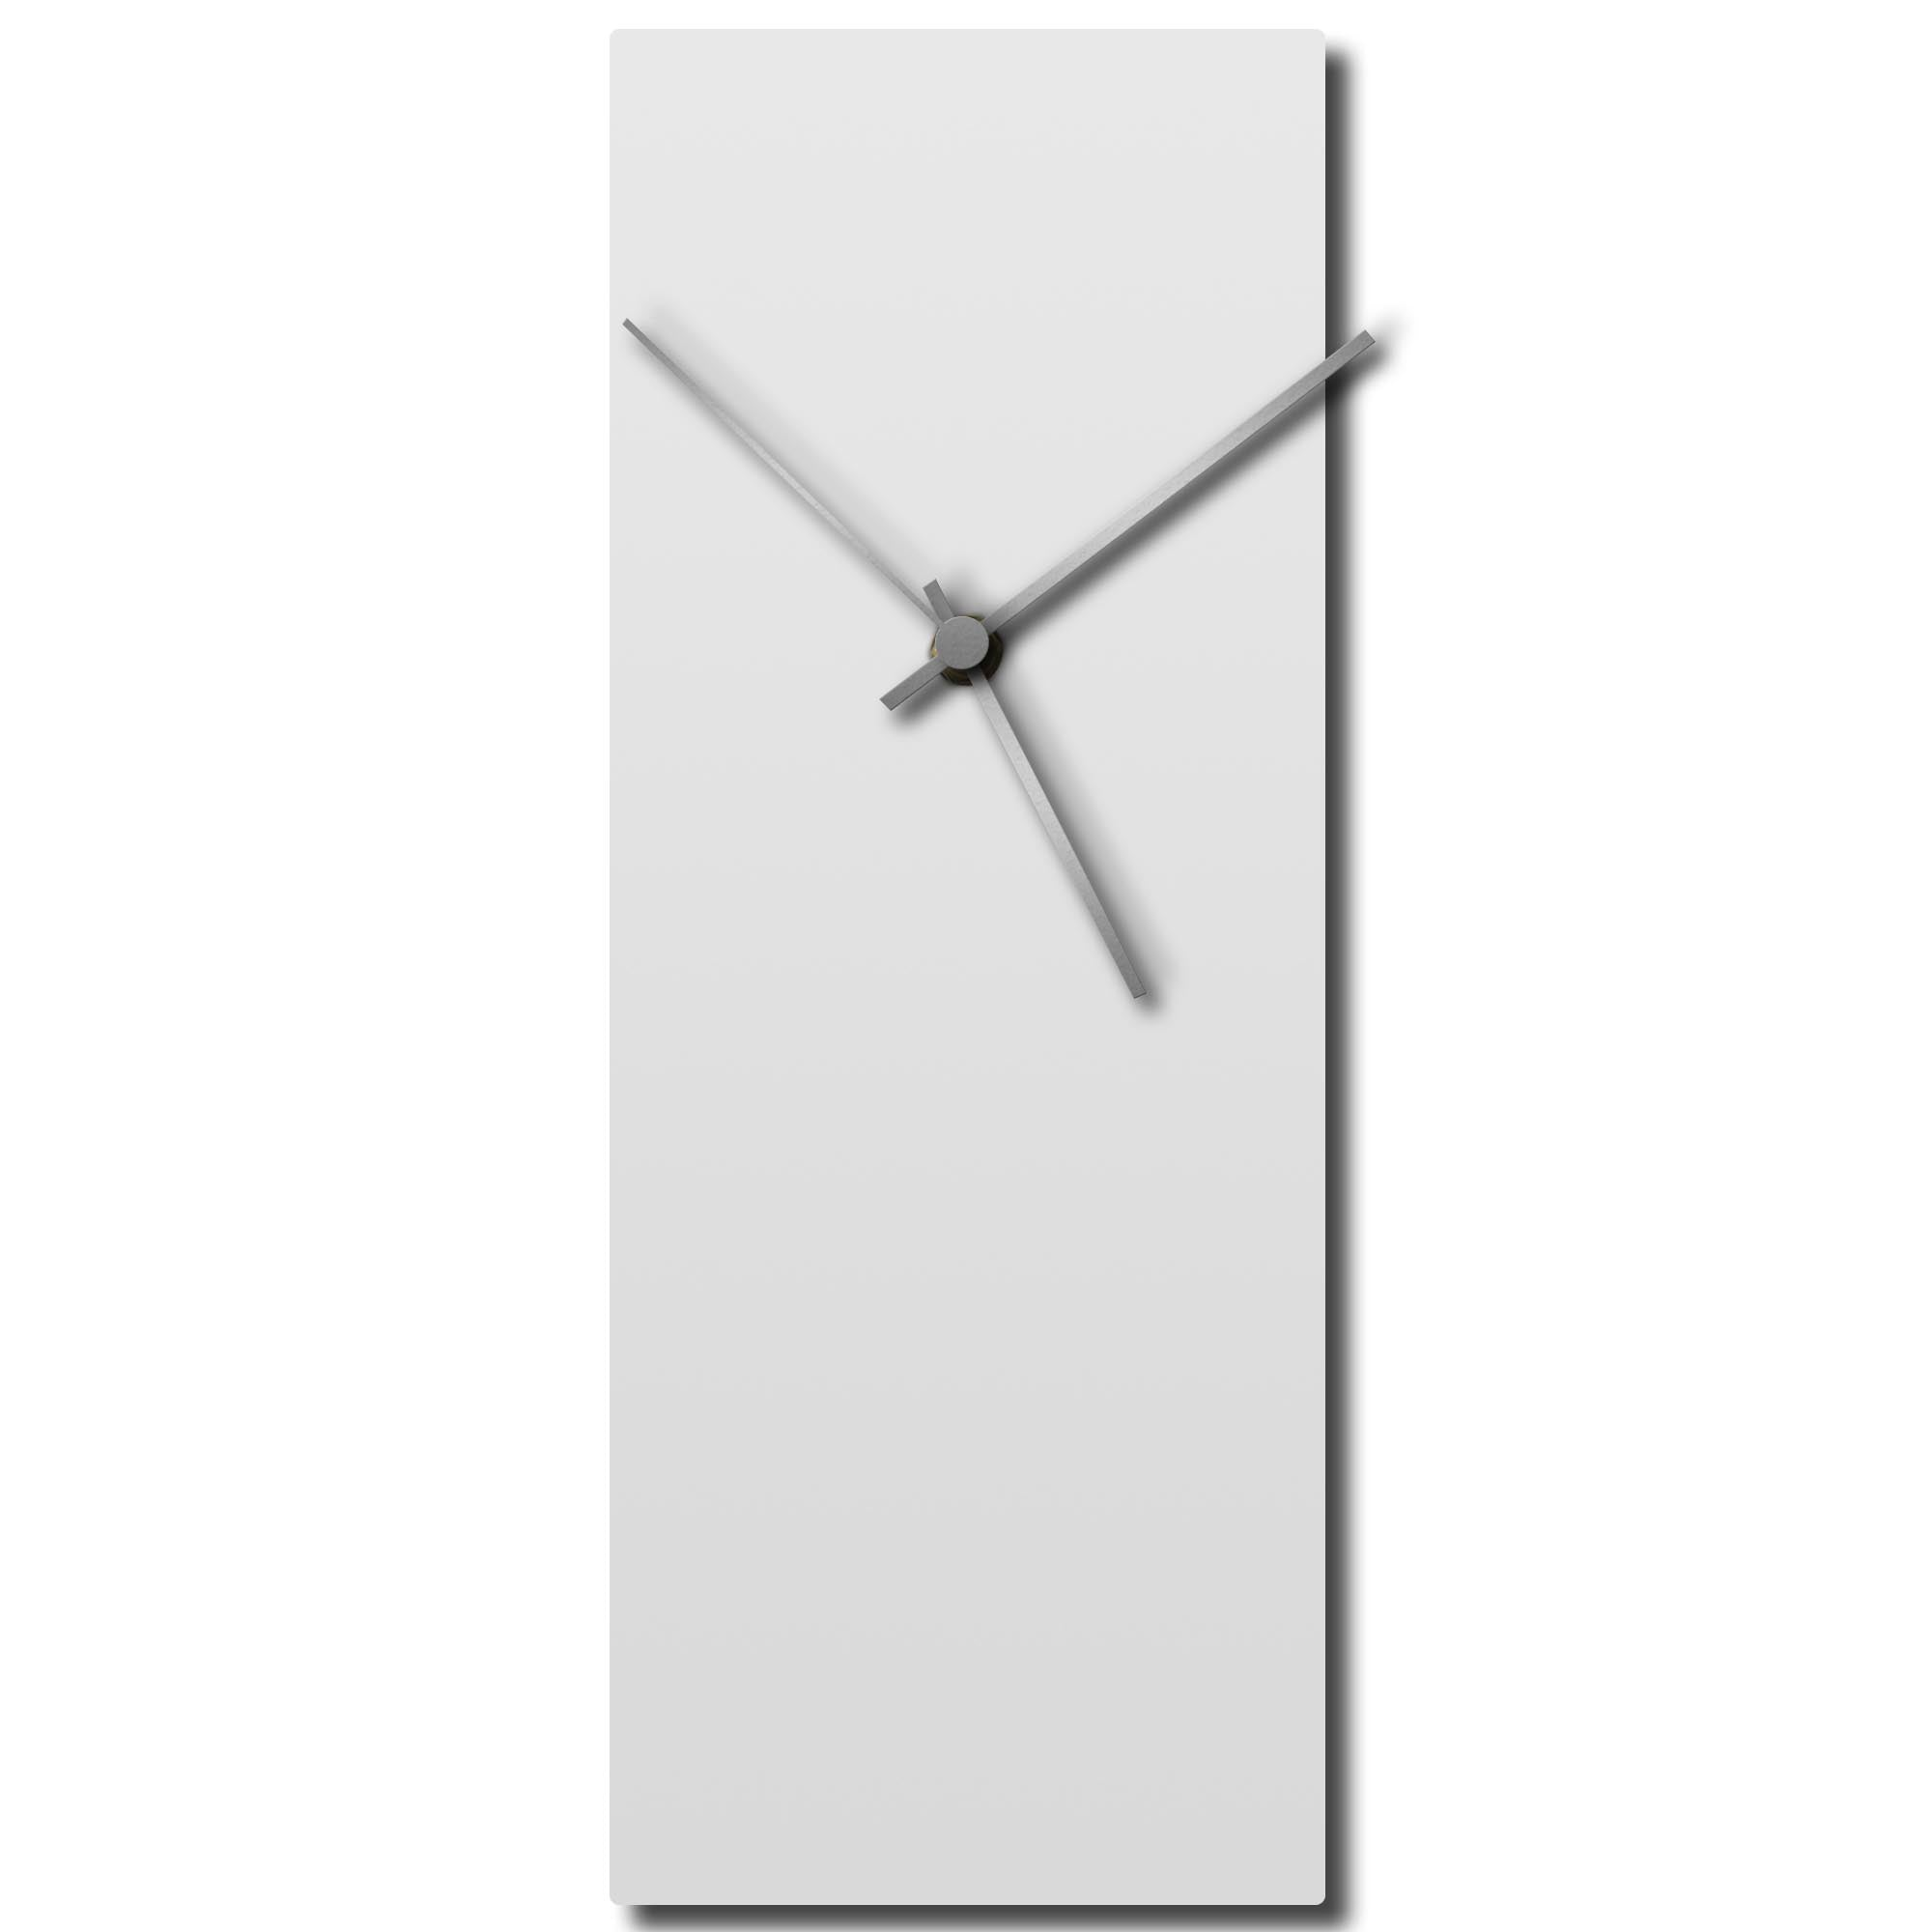 Whiteout Silver Clock Large by Adam Schwoeppe - Modern Wall Clock on Brushed White Polymetal